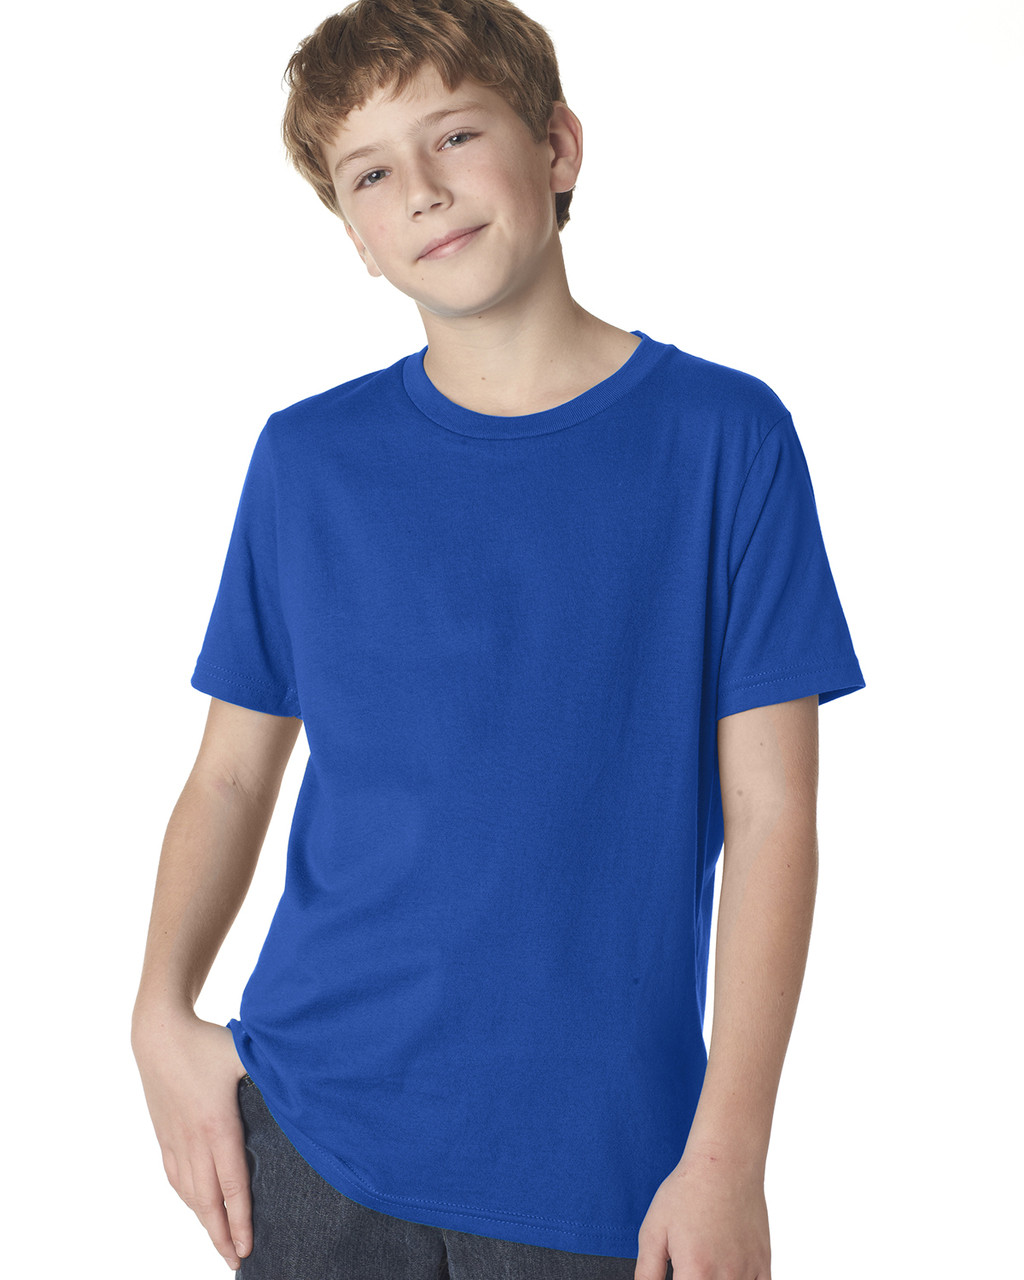 Royal 3310 Next Level Boys' Premium Crew Tee | Blankclothing.ca